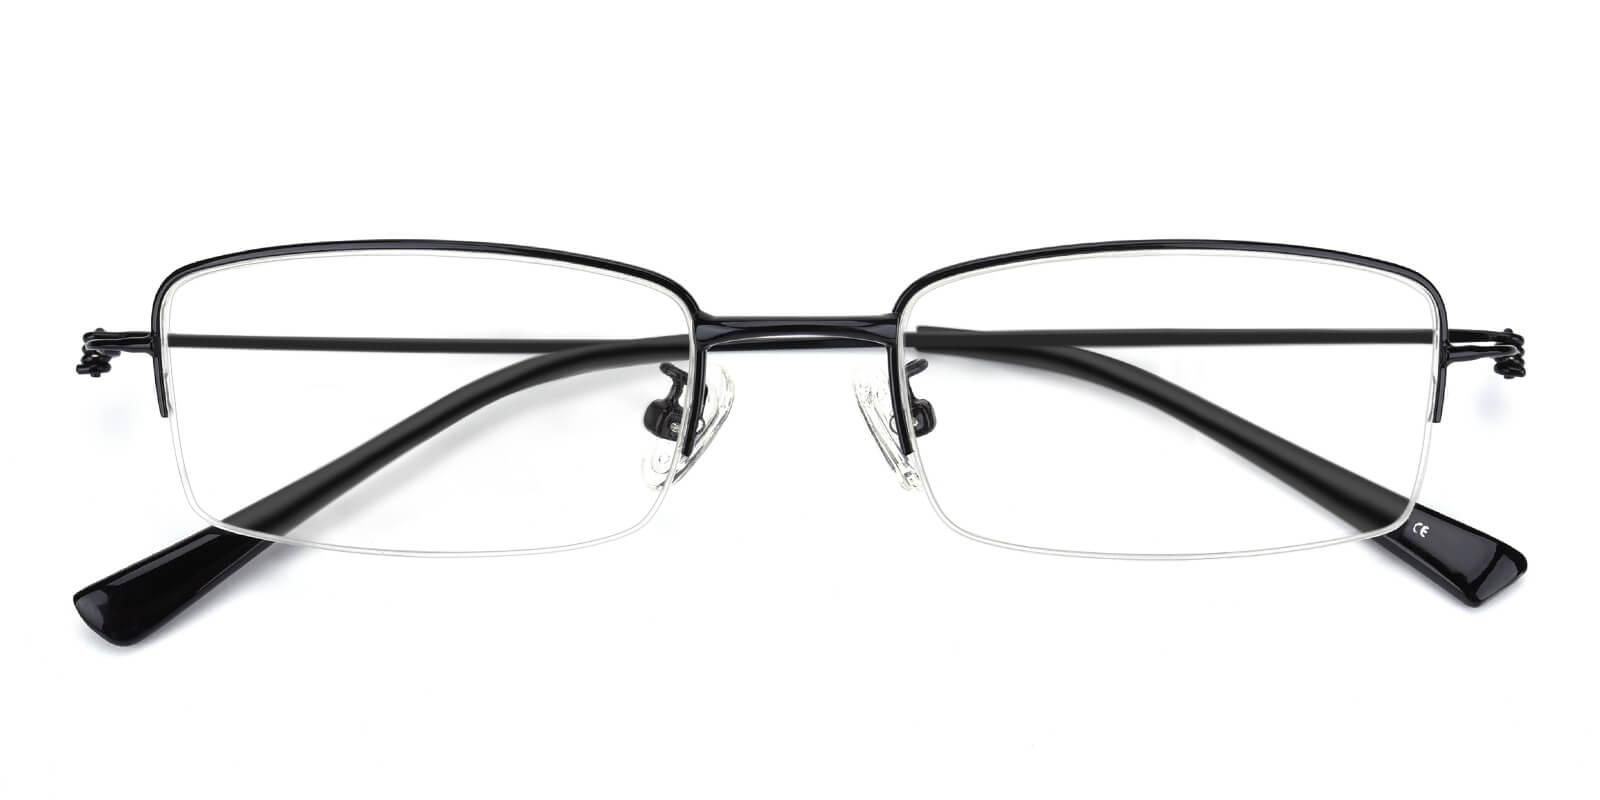 Rector-Black-Rectangle-Metal-Eyeglasses-detail